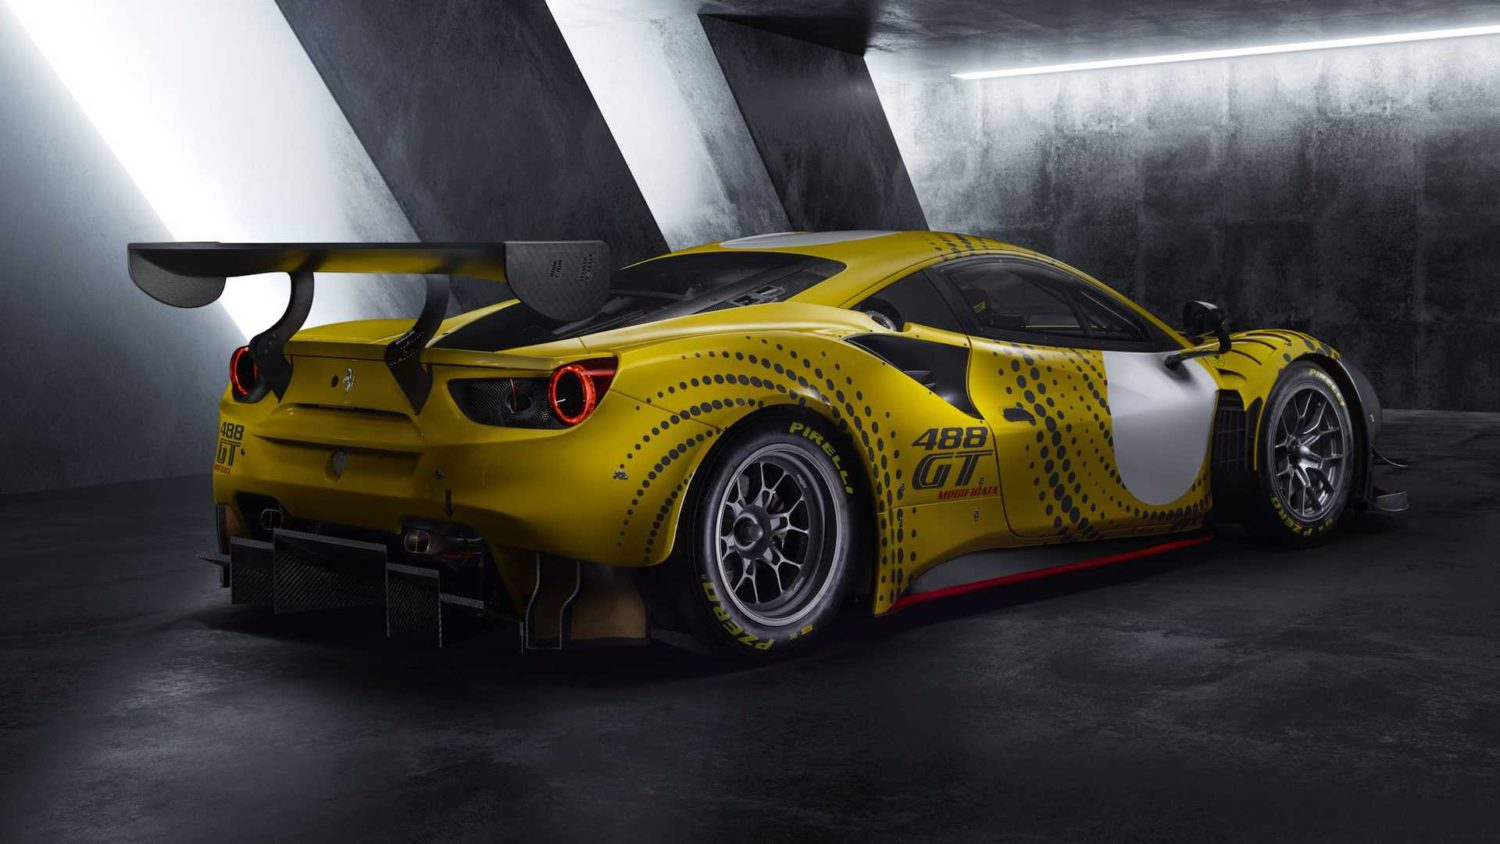 Ferrari 488 GT Modificata rear three quarter view